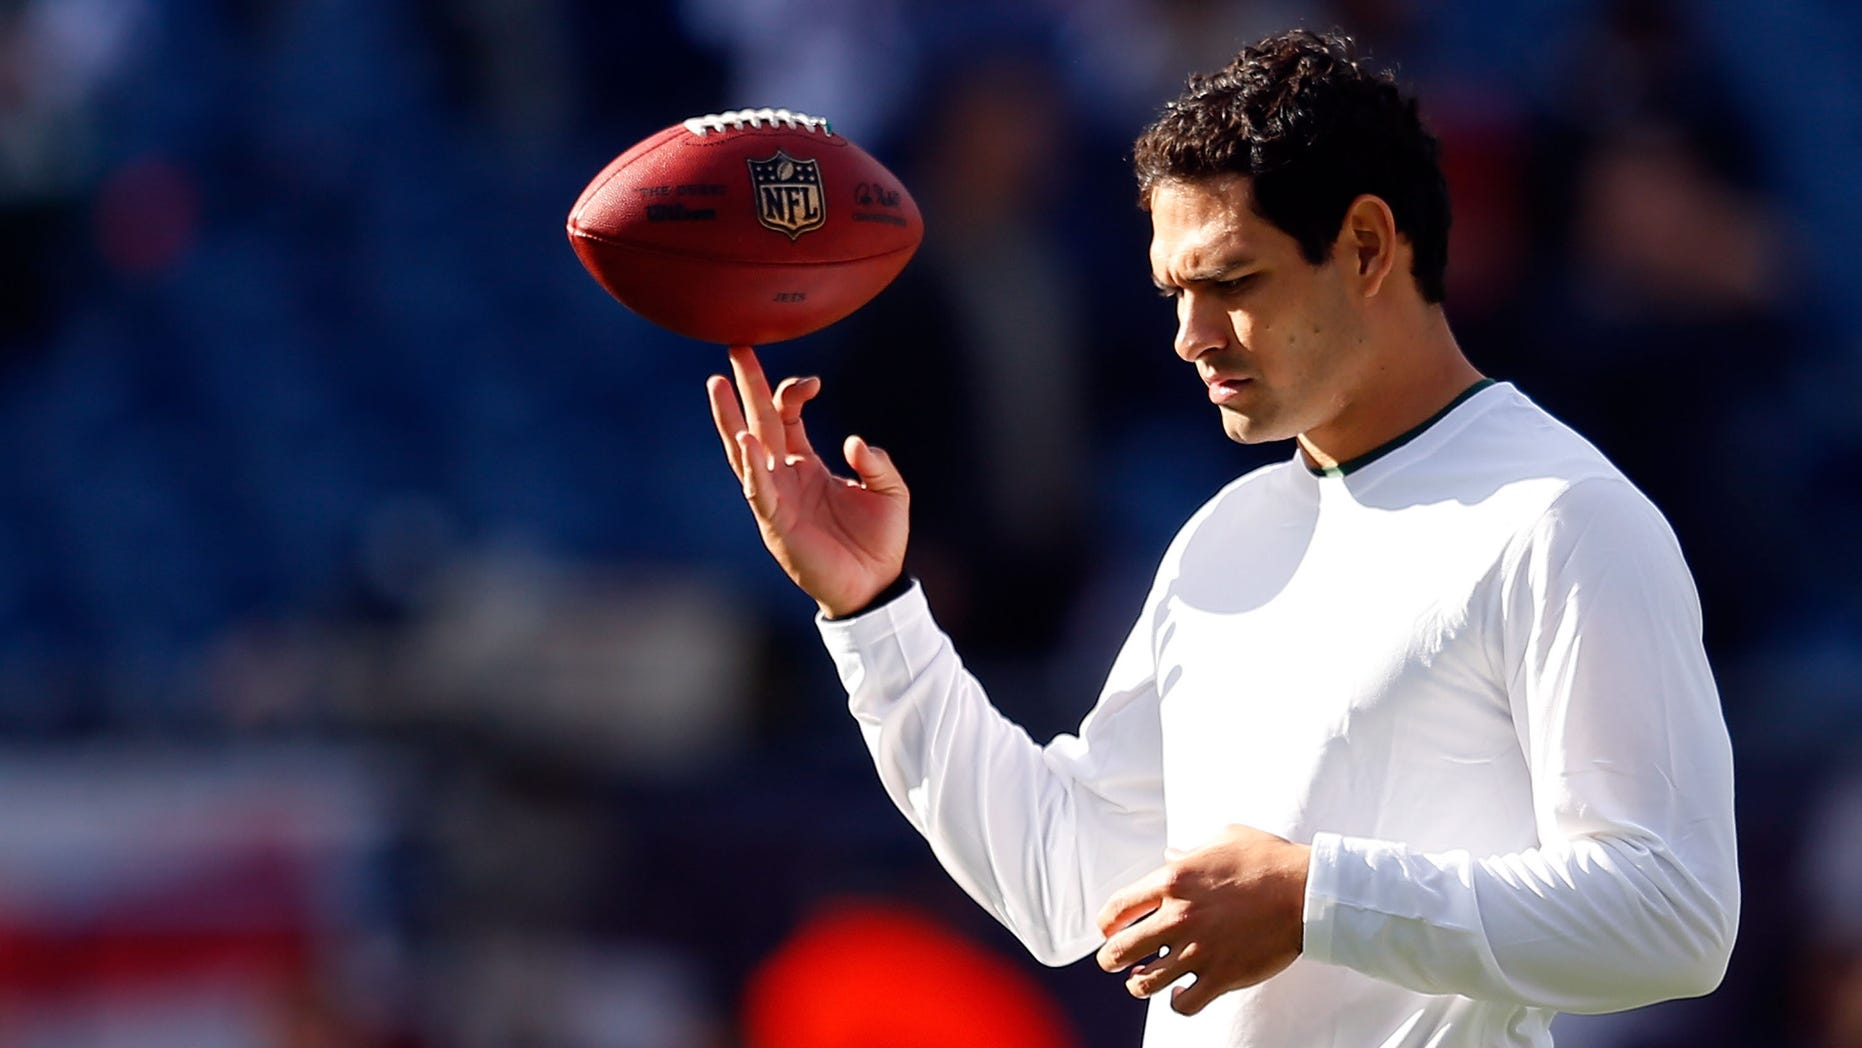 FOXBORO, MA - OCTOBER 21:  Mark Sanchez #6 of the New York Jets twirls the football before a game against the New England Patriots at Gillette Stadium on October 21, 2012 in Foxboro, Massachusetts. (Photo by Jim Rogash/Getty Images)